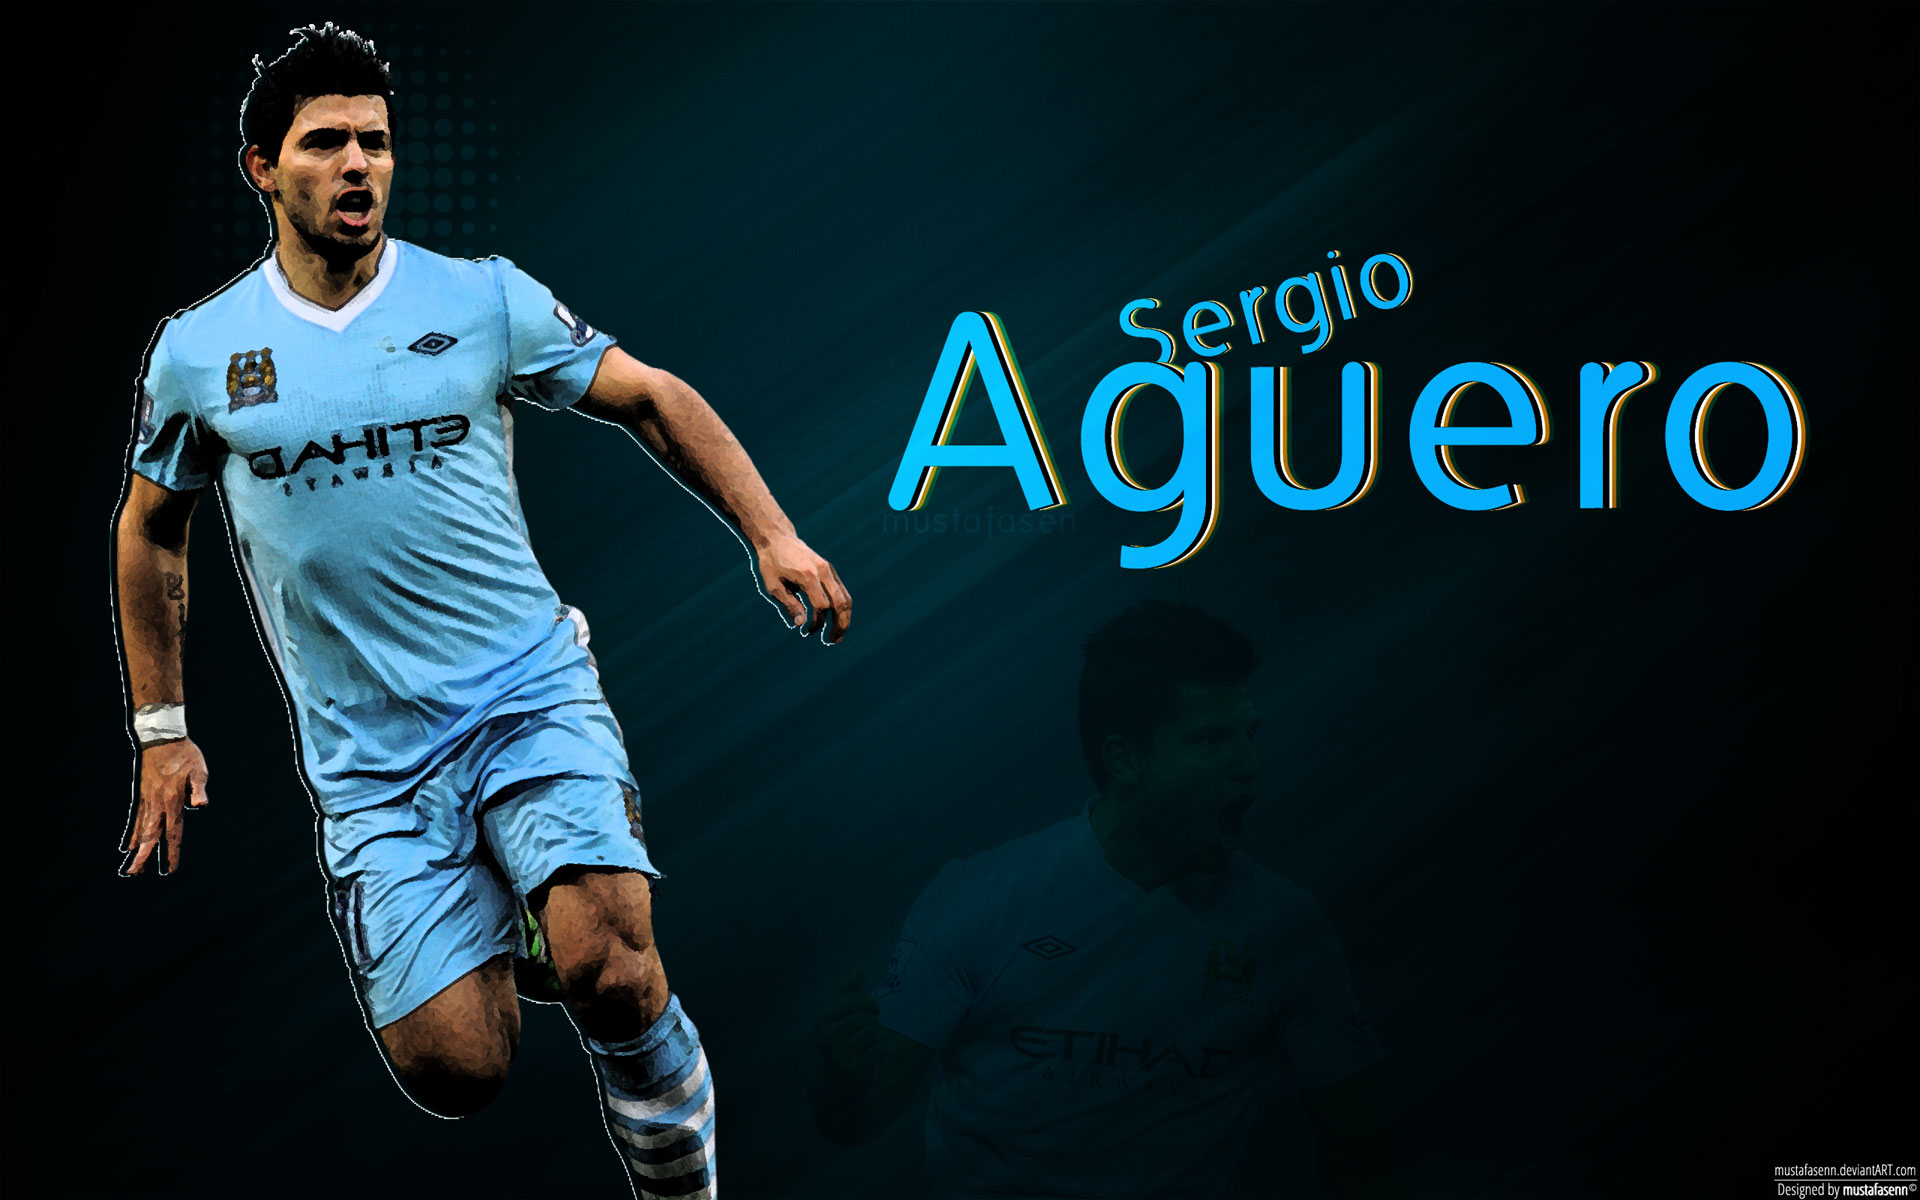 Bruins Hd Wallpaper Sergio Aguero Wallpapers High Resolution And Quality